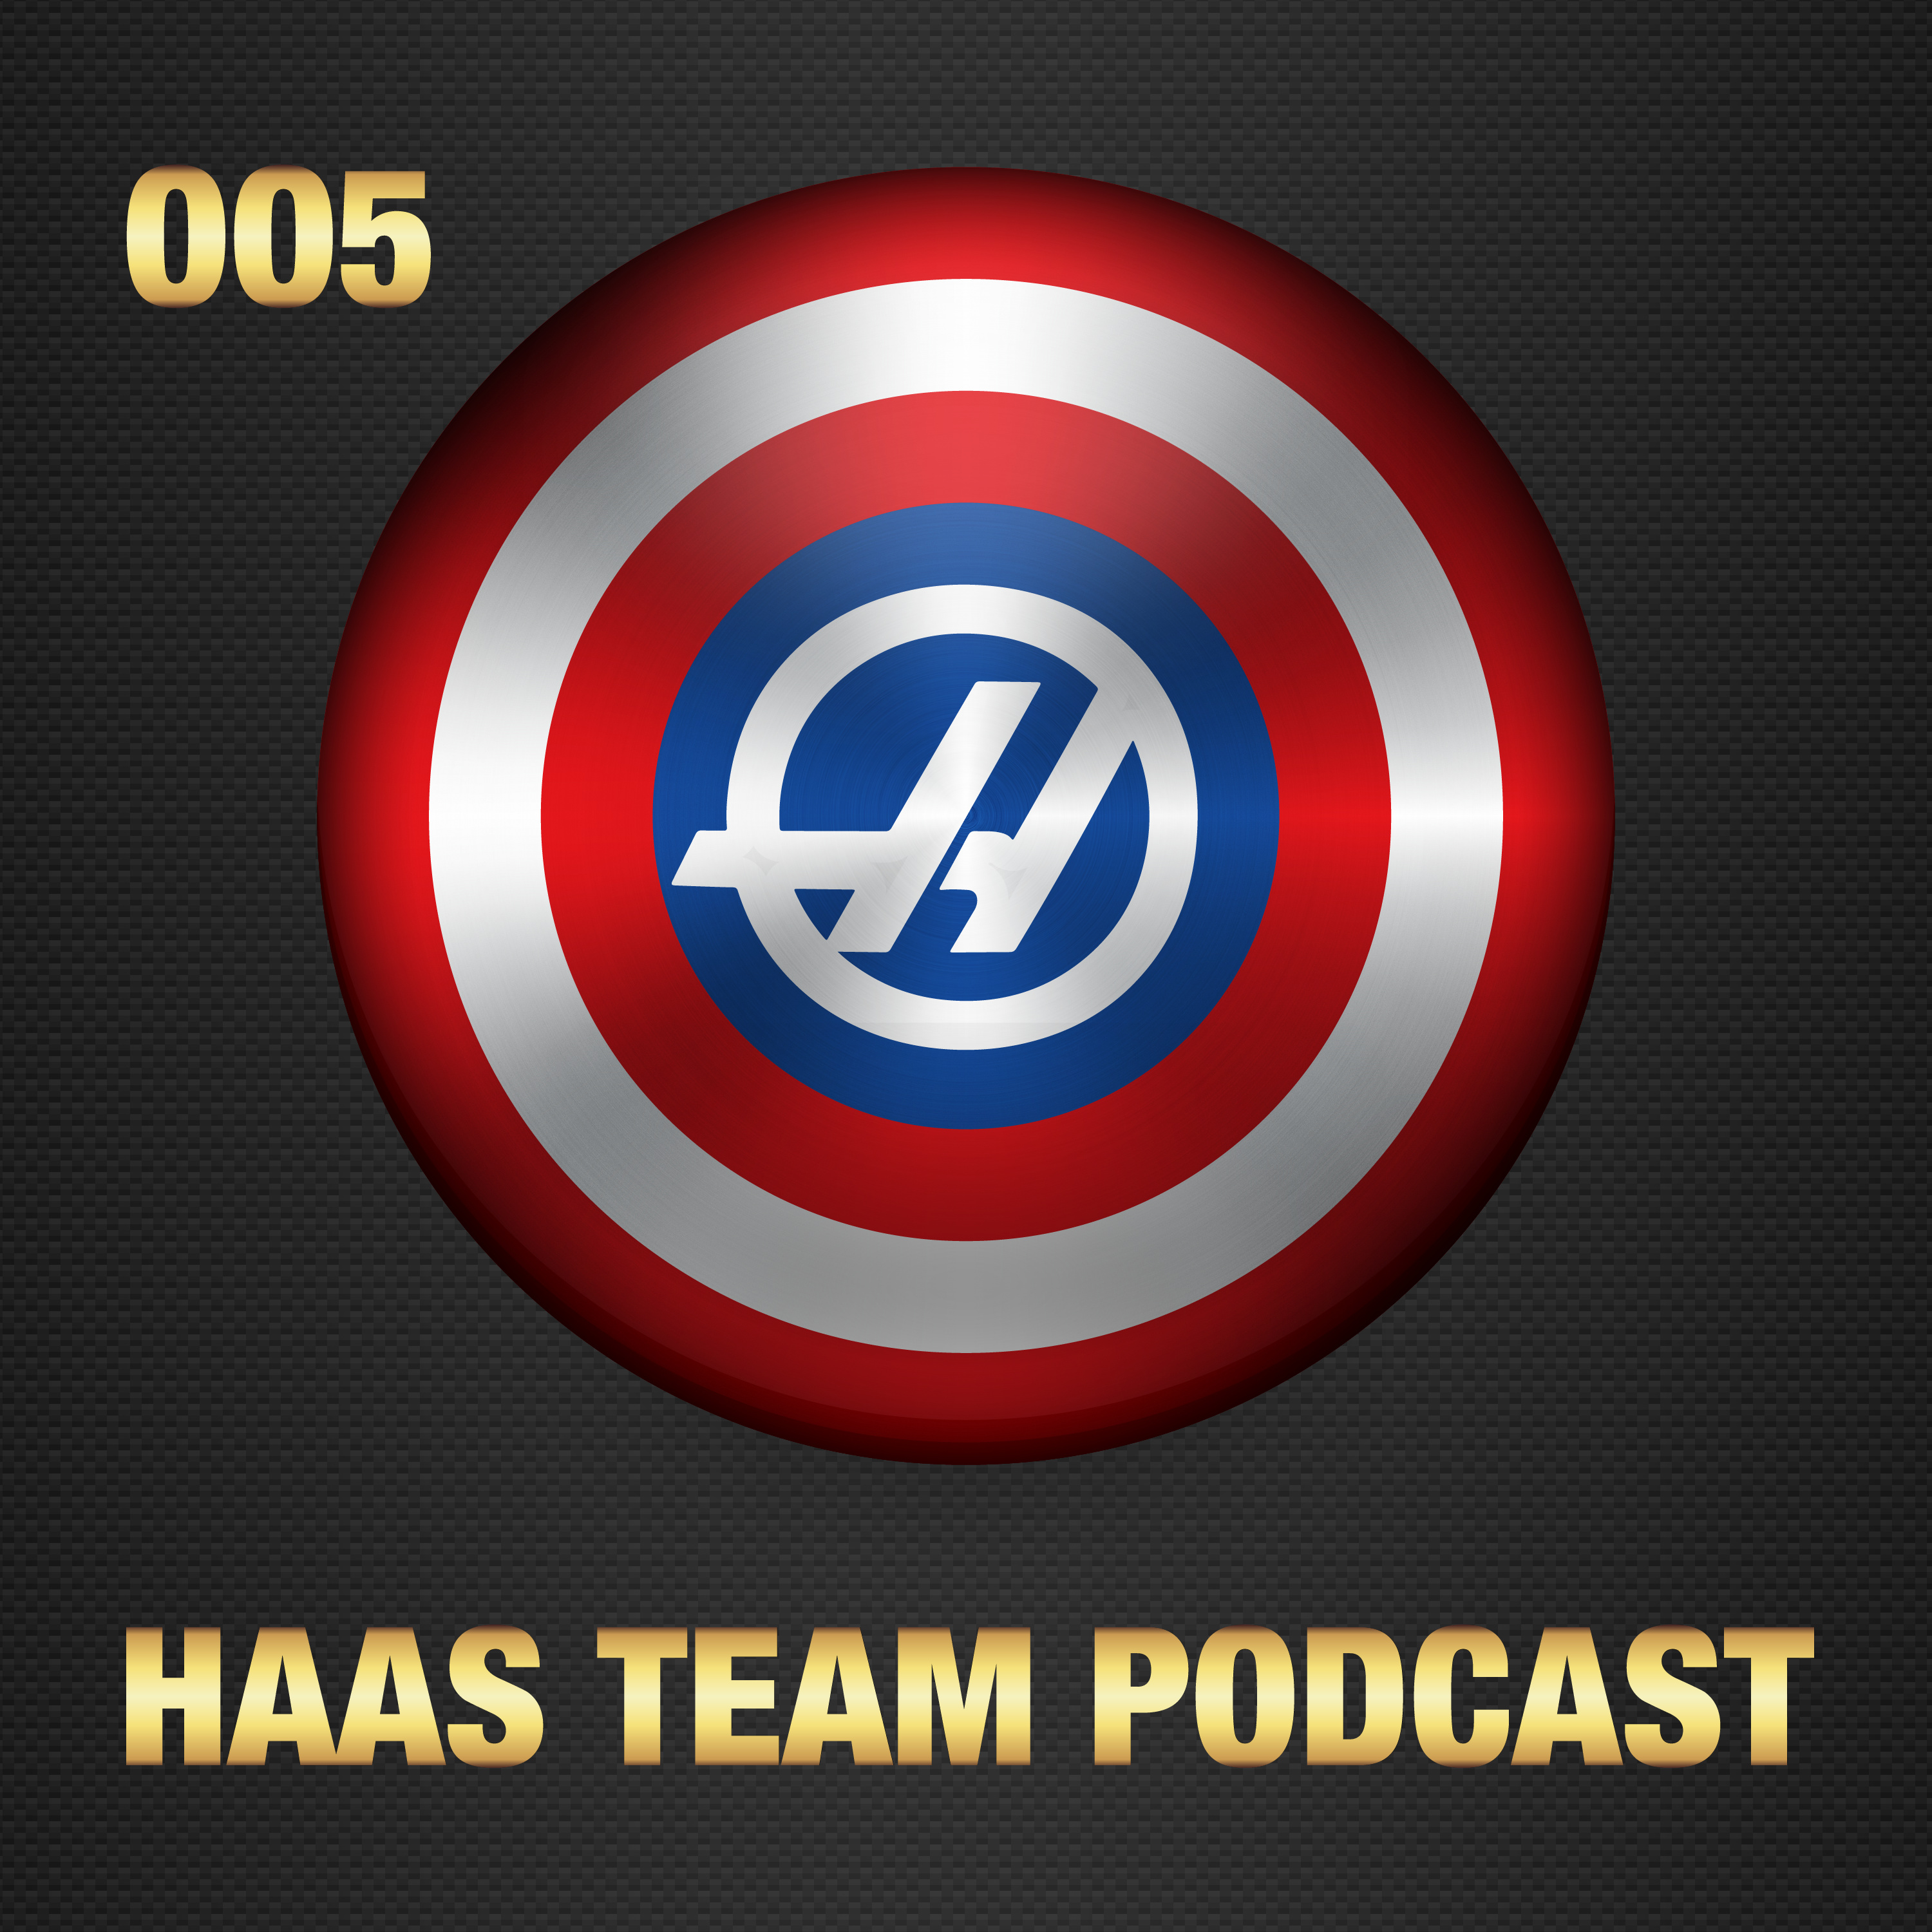 Haas Team Podcast, Episode 005 - We're Back and Headed to Canada!